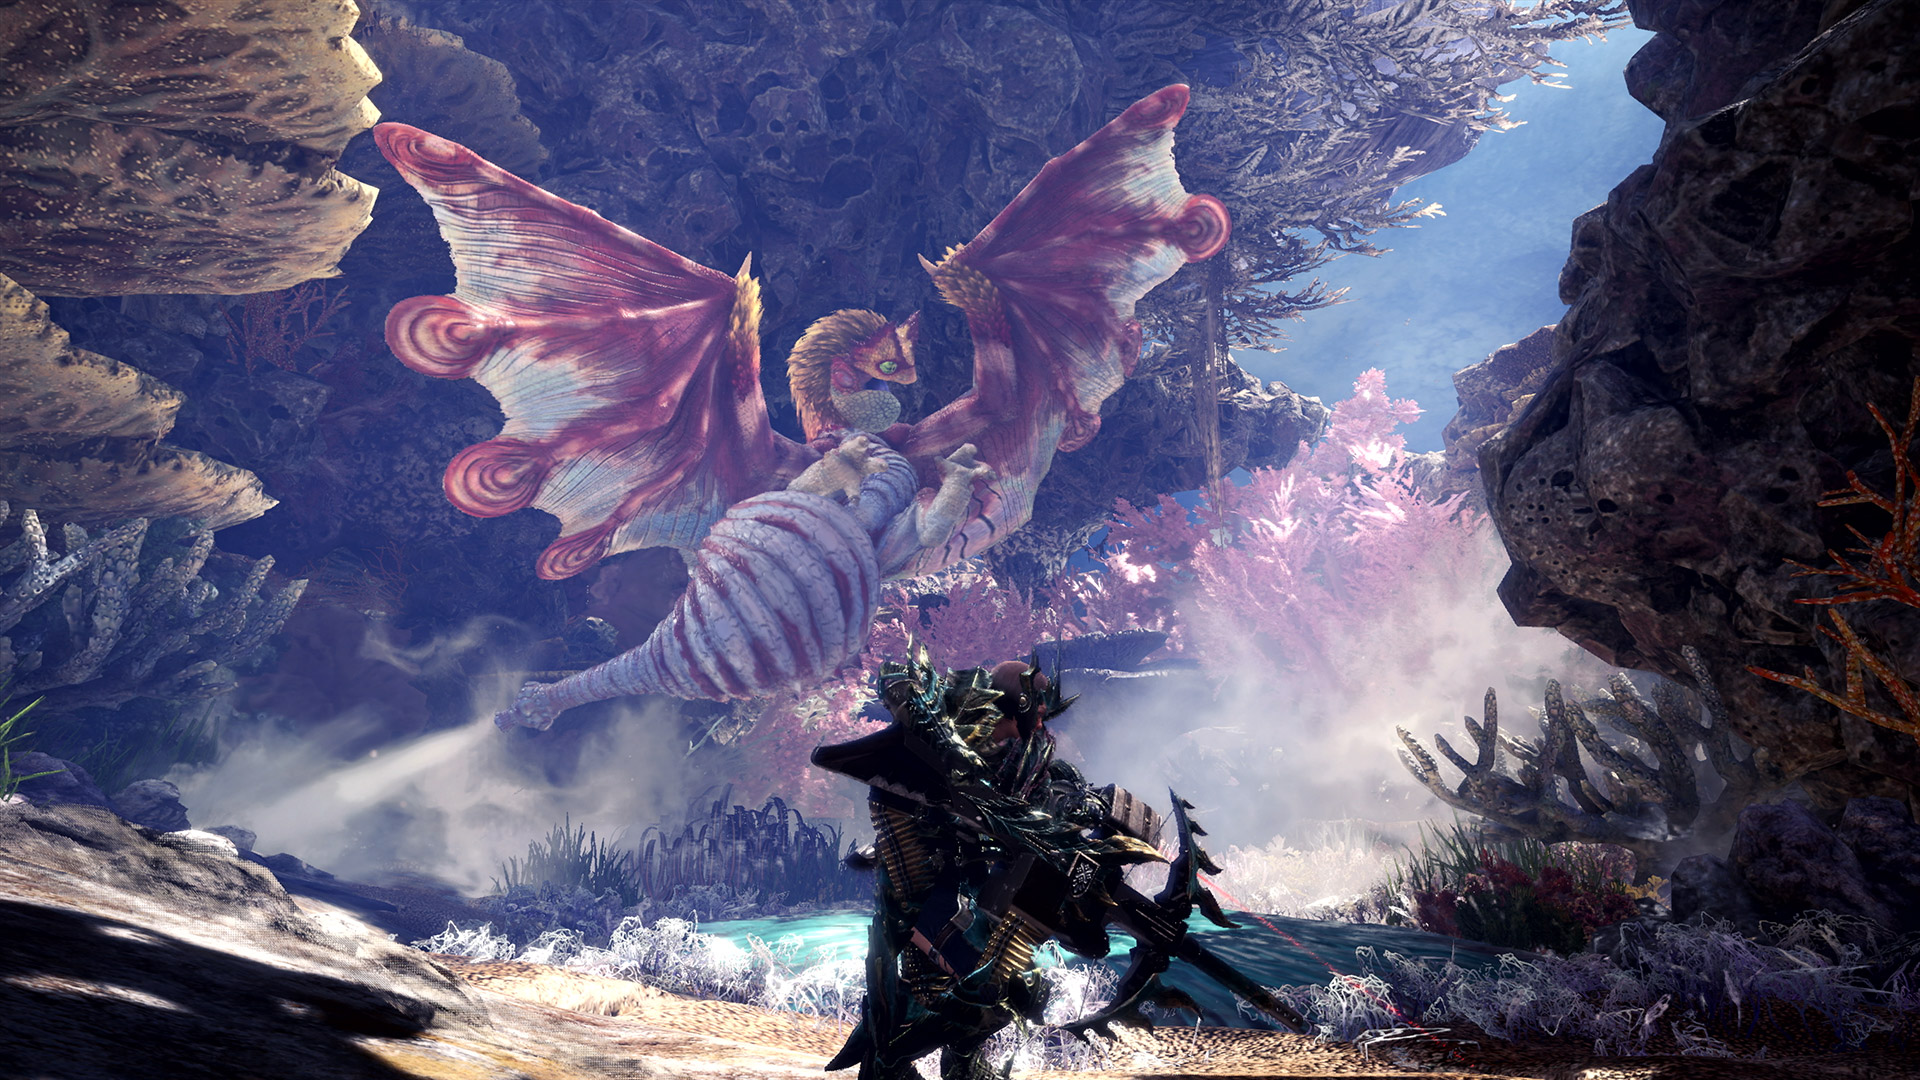 Capcom talks Monster Hunter's future: 'there are still so many people who don't know about the franchise' screenshot